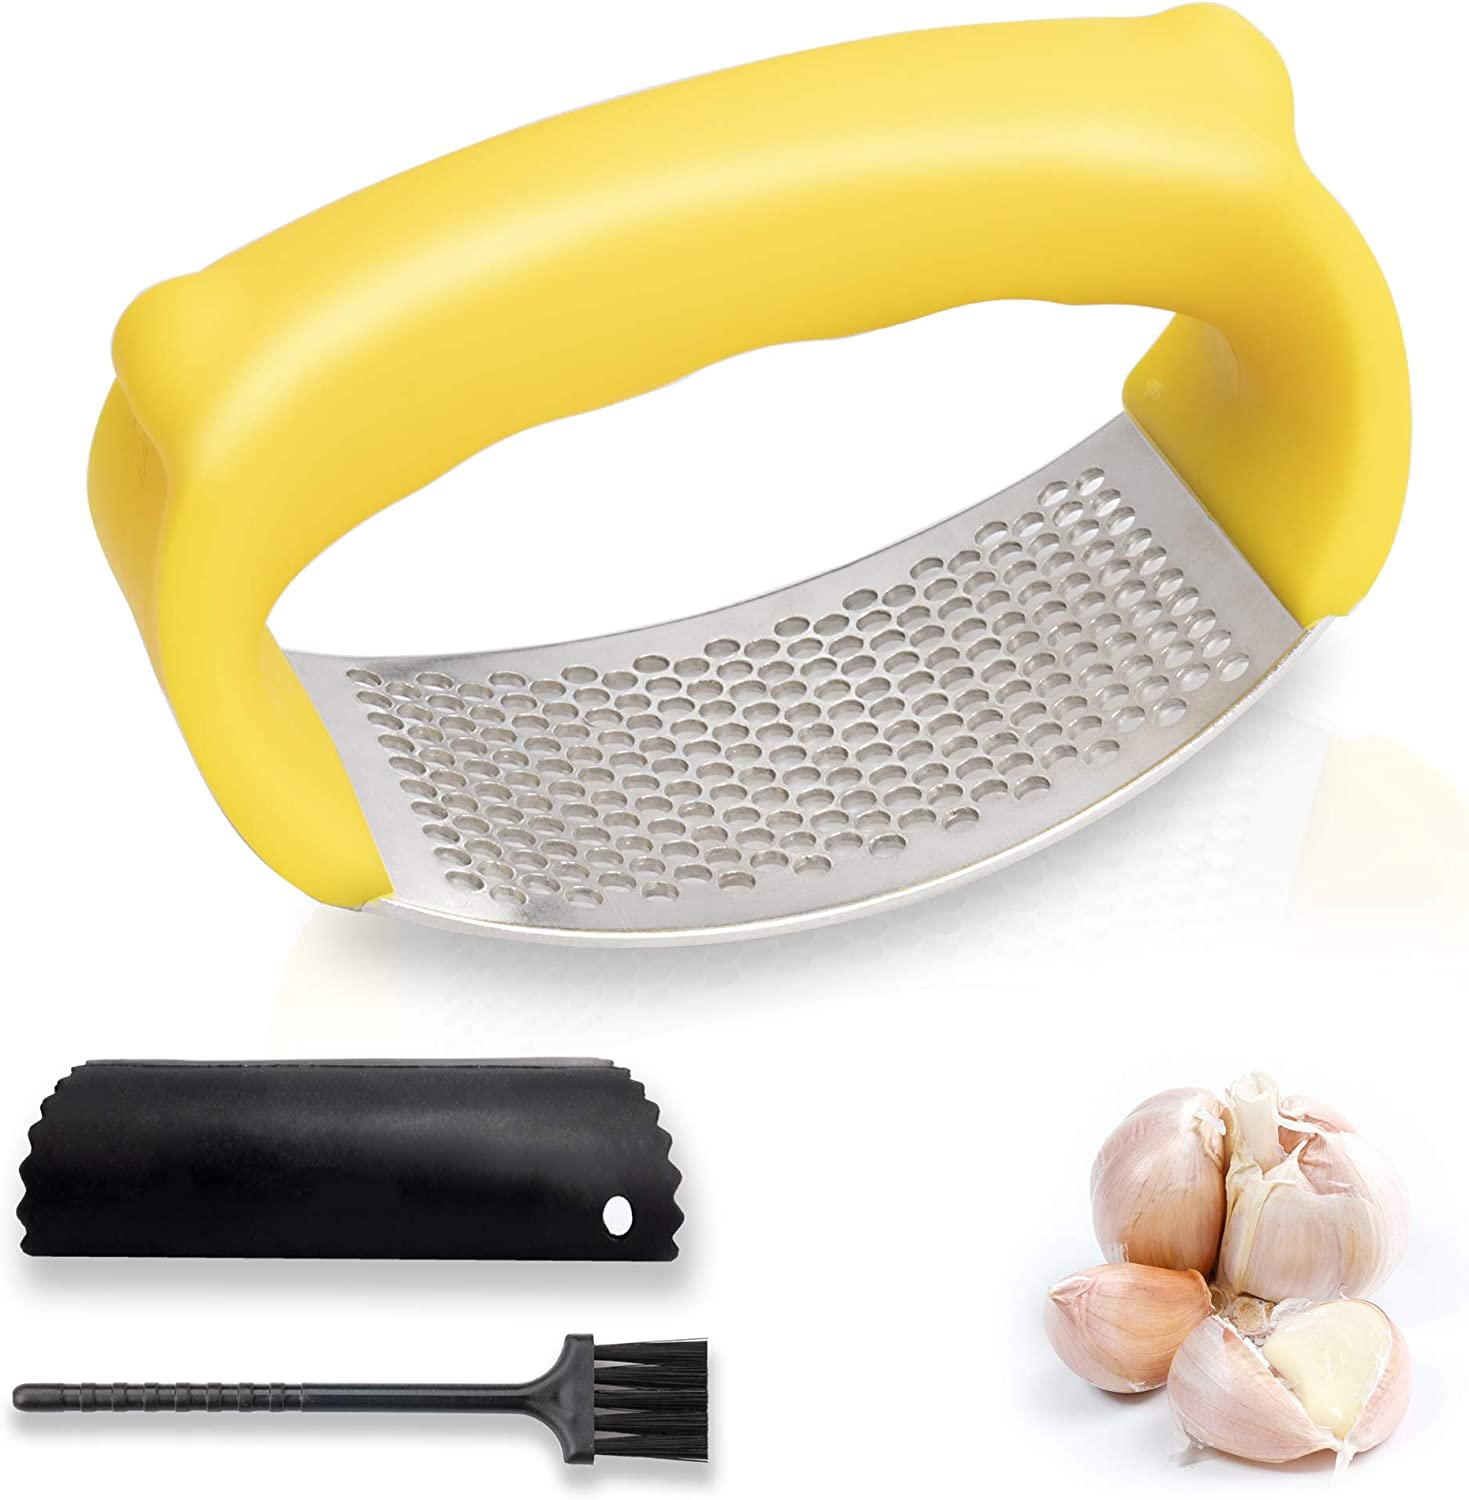 Stainless Steel Garlic Mincer Crusher with Silicone Tube Peeler /& Cleaning Brush Yellow New Garlic Press Rocker